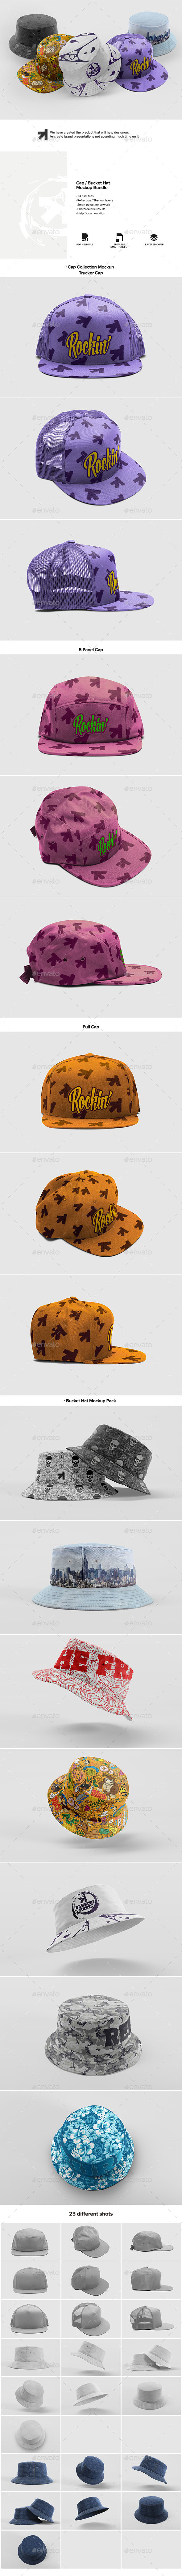 Cap Bucket Hat Mockup Bundle - Miscellaneous Apparel